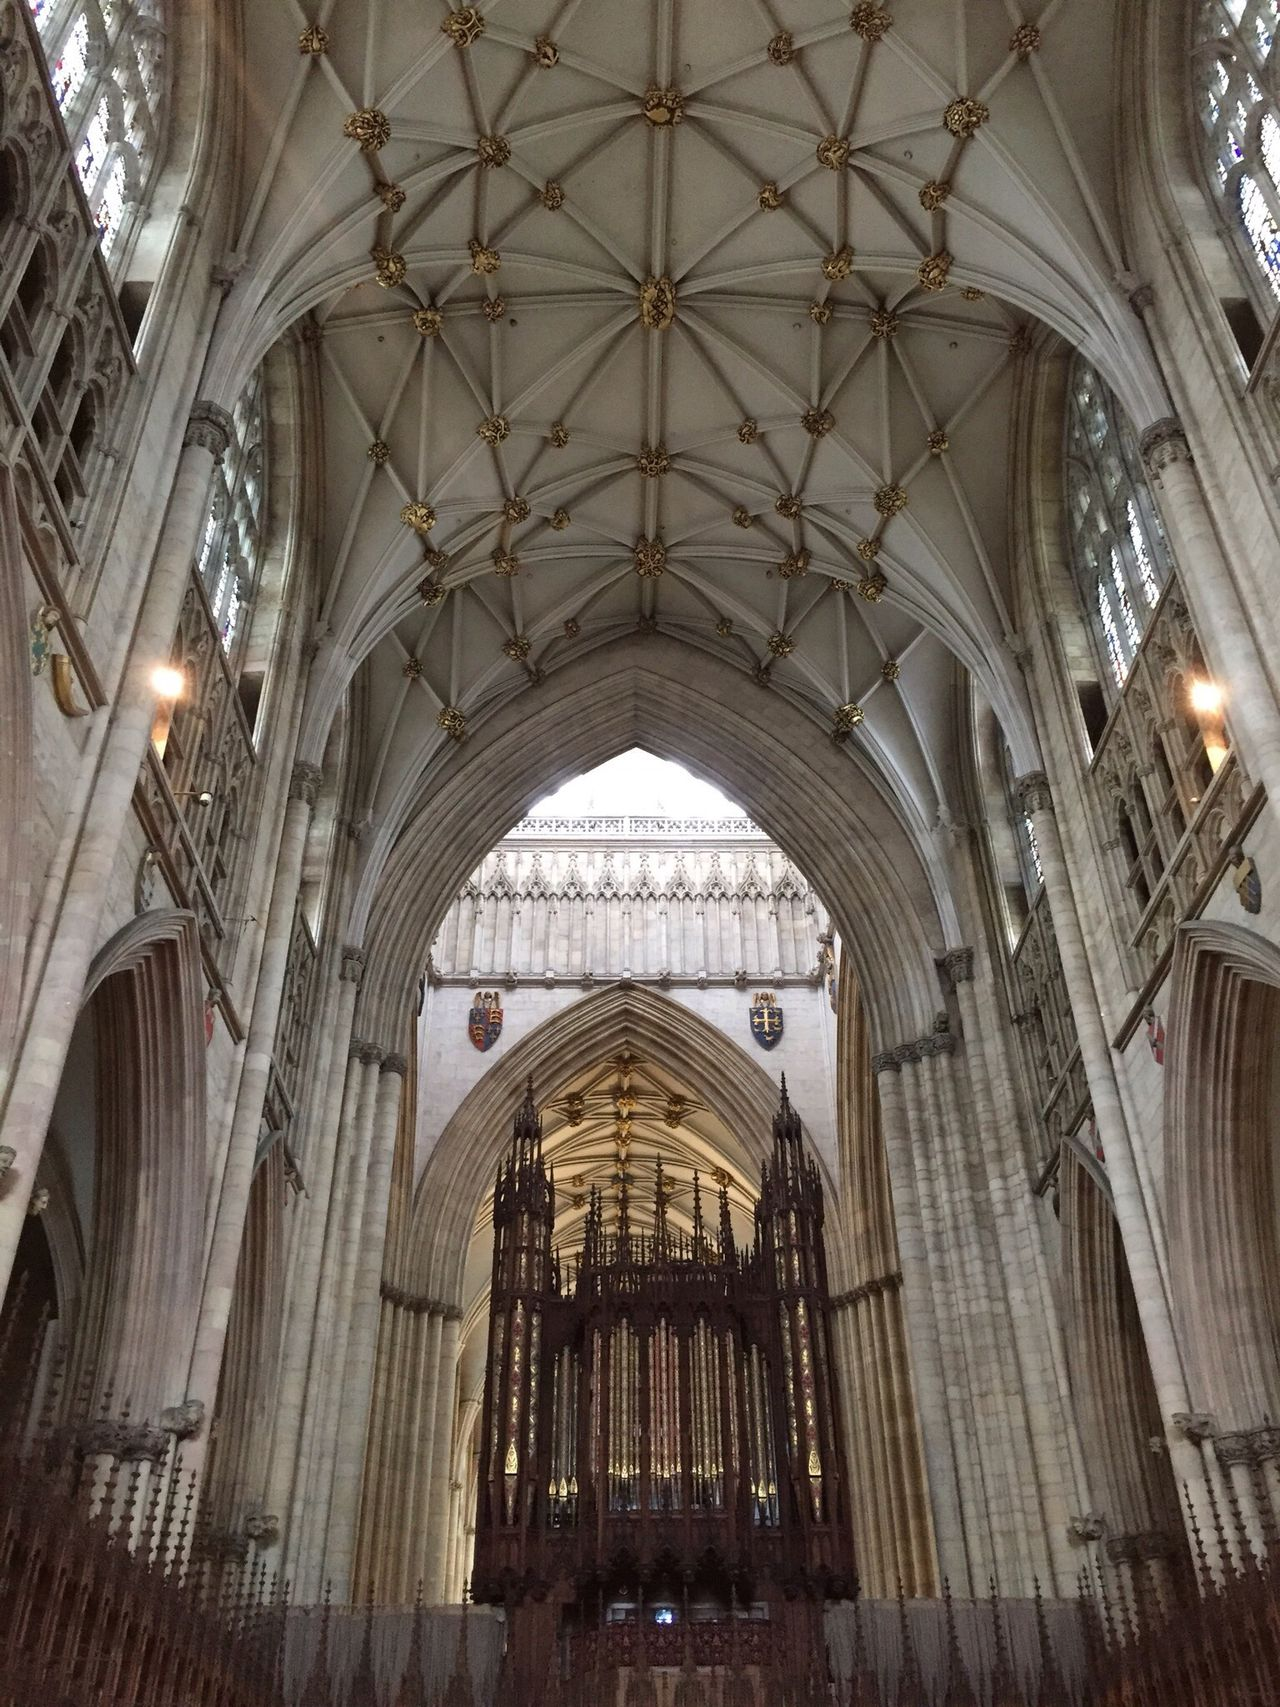 Look up Architecture Place Of Worship Arch Indoors  Religion Built Structure Ceiling No People Hanging History Day York Place Of Worship Outdoors Historical Building